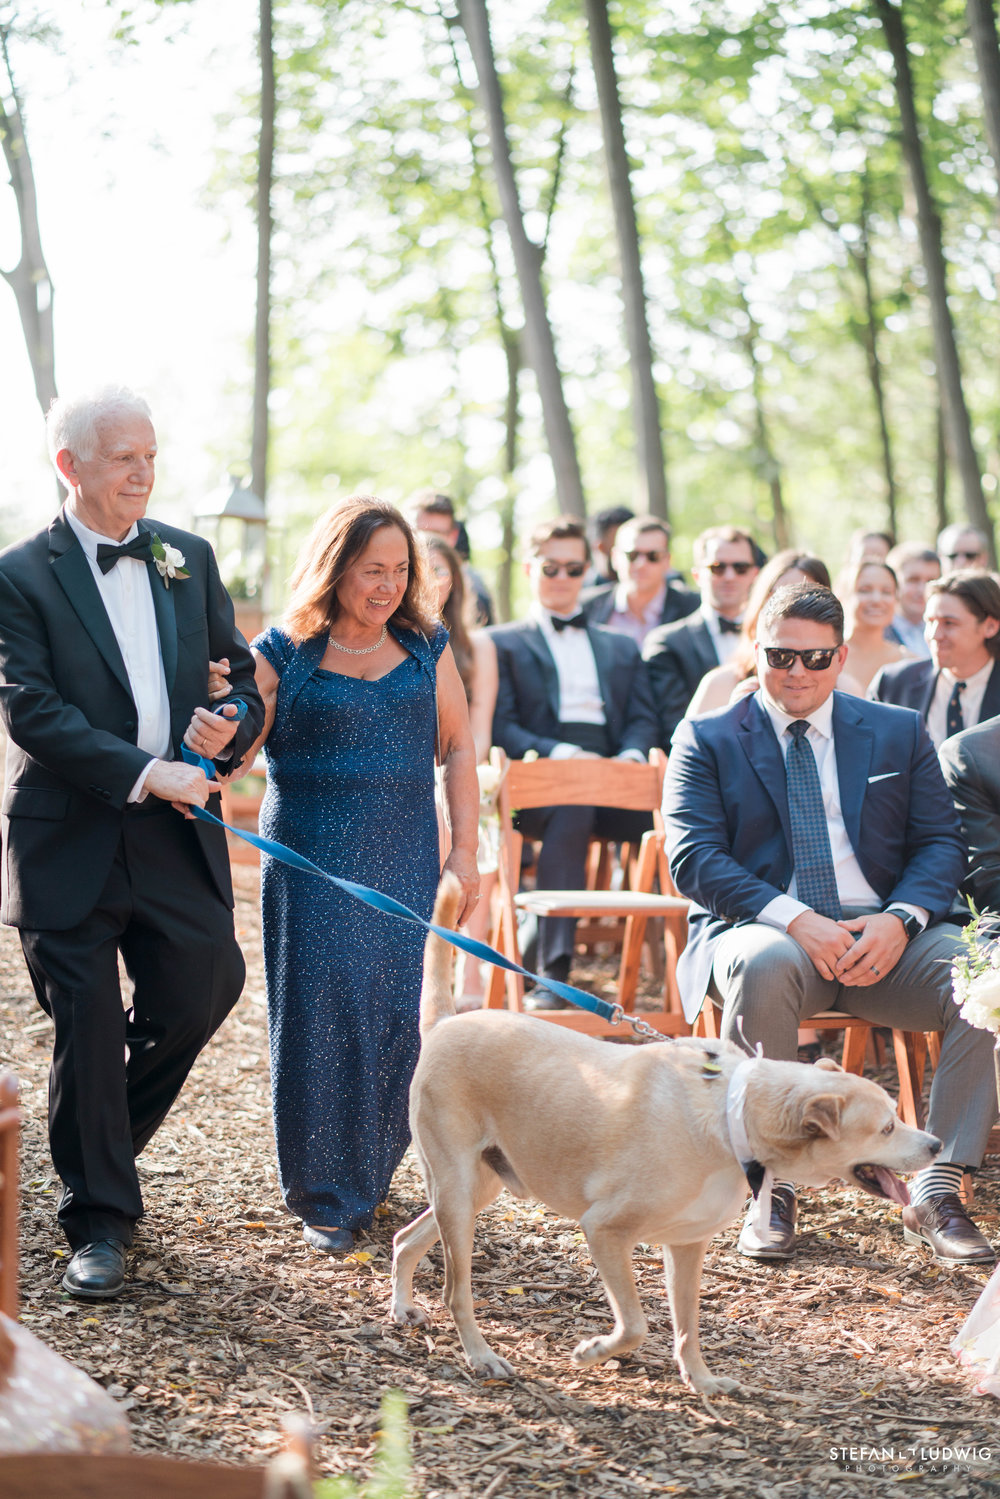 Heather and Andrew Wedding Photography ay Meadow Ridge Farm in Hudson NY by Stefan Ludwig Photography-70.jpg